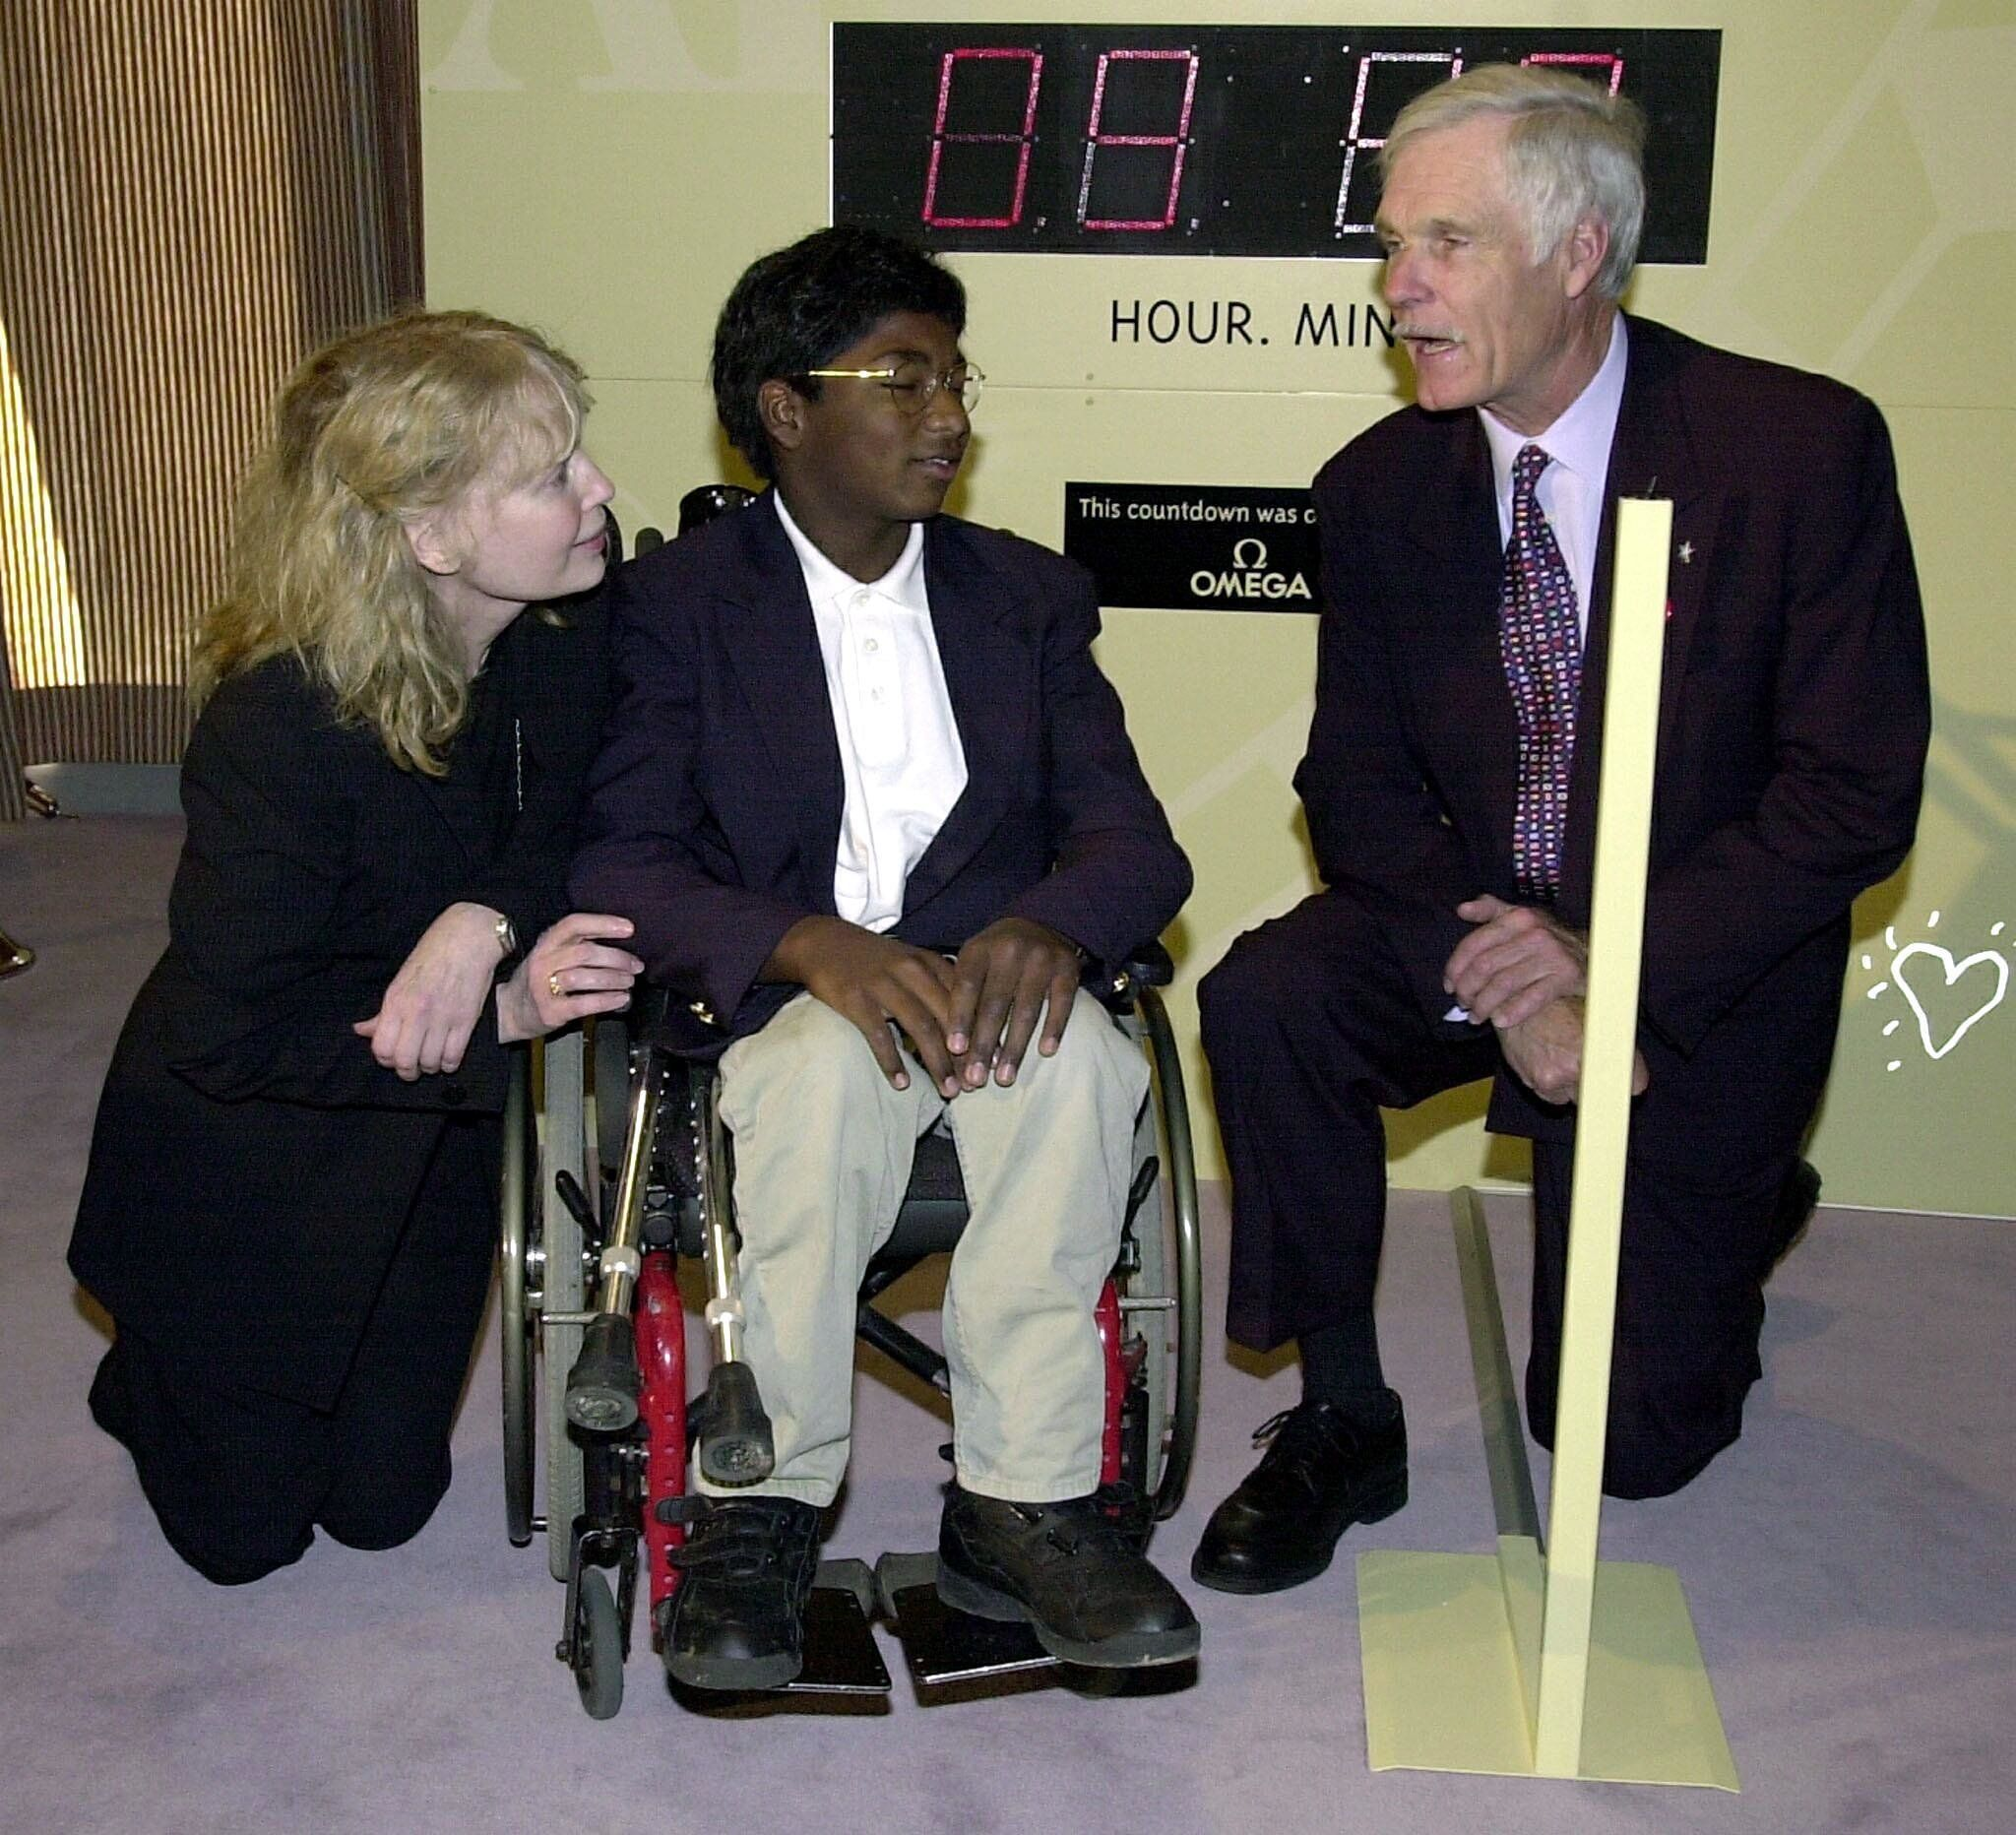 Mia Farrow and her adopted son Thaddeus, who suffers from polio, talk with media mogul Ted Turner before a United Nations con